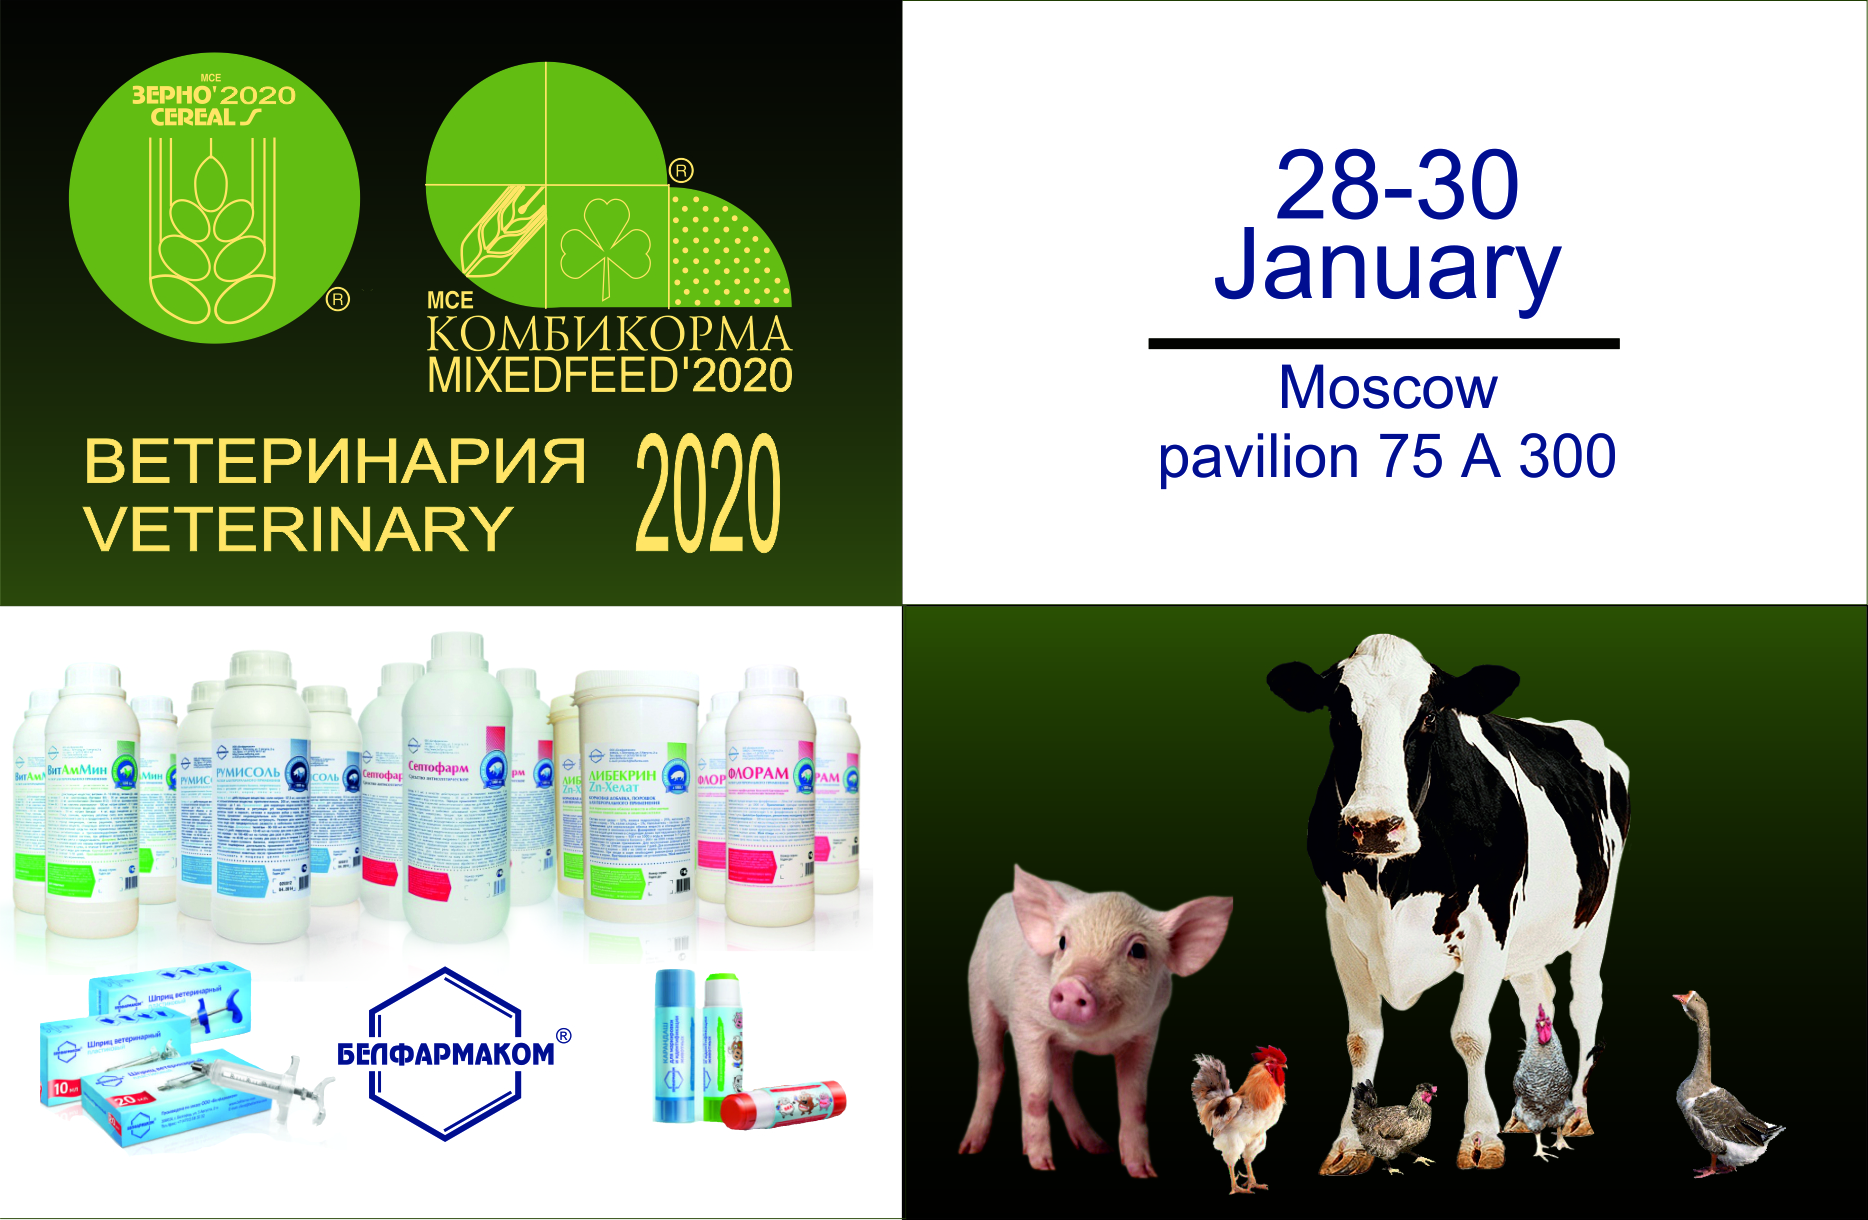 International exhibition of CEREALS-MIXED FEED-VETERINARY 2020